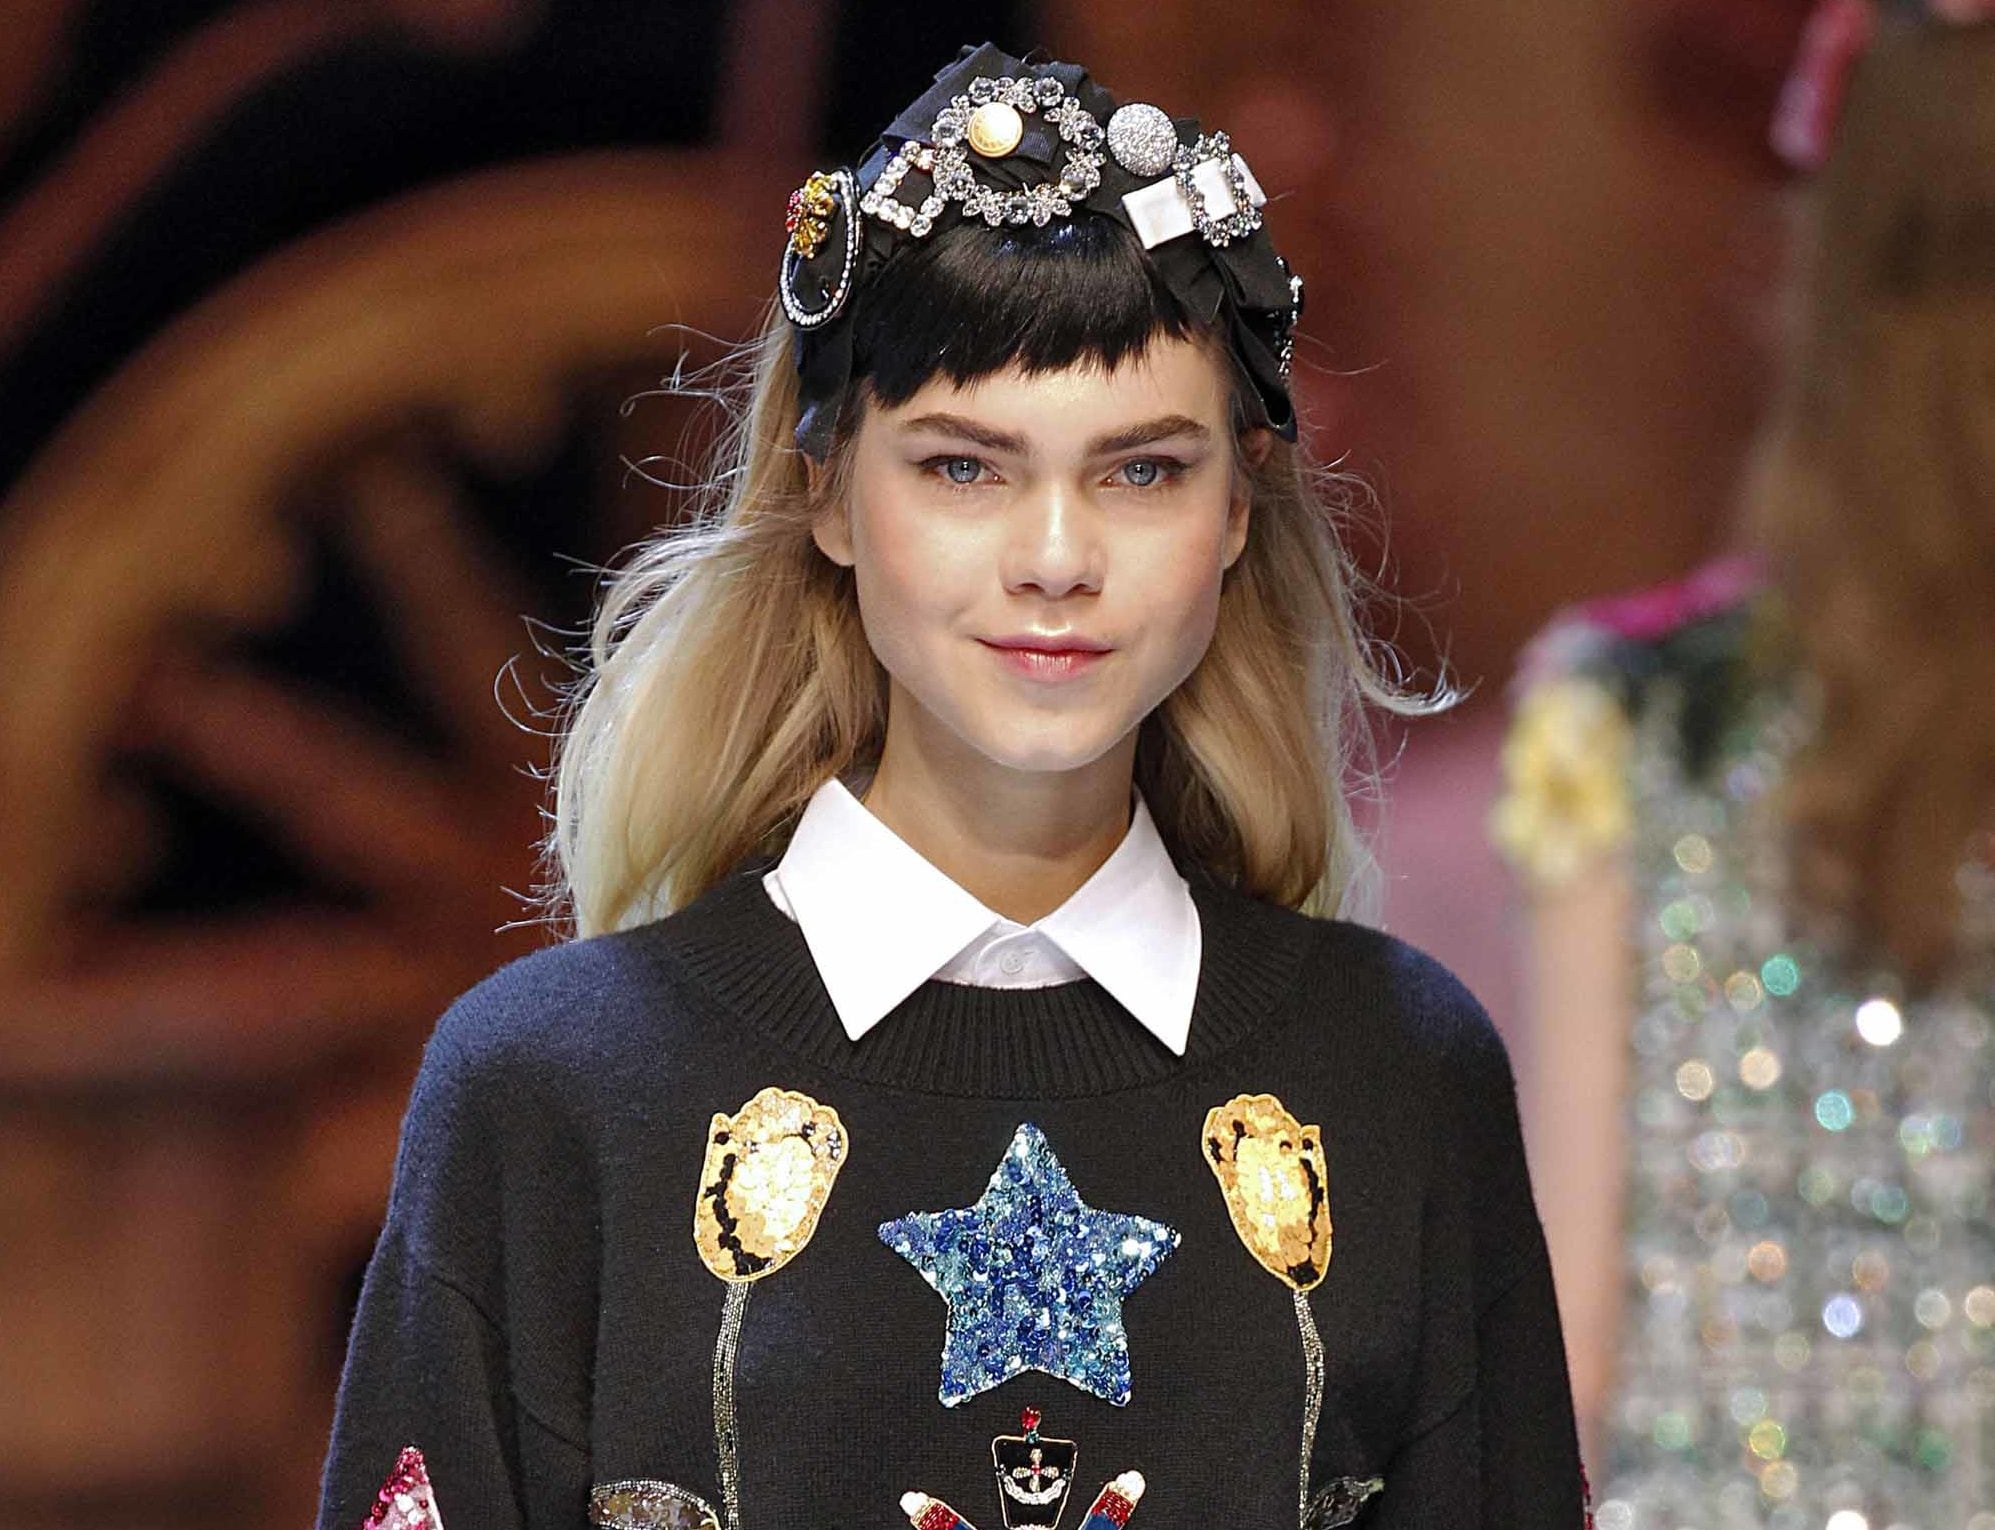 model with long blonde hair with brown micro fringe wearing jewelled headband and logo jumper and white shirt at aw16 fashion week